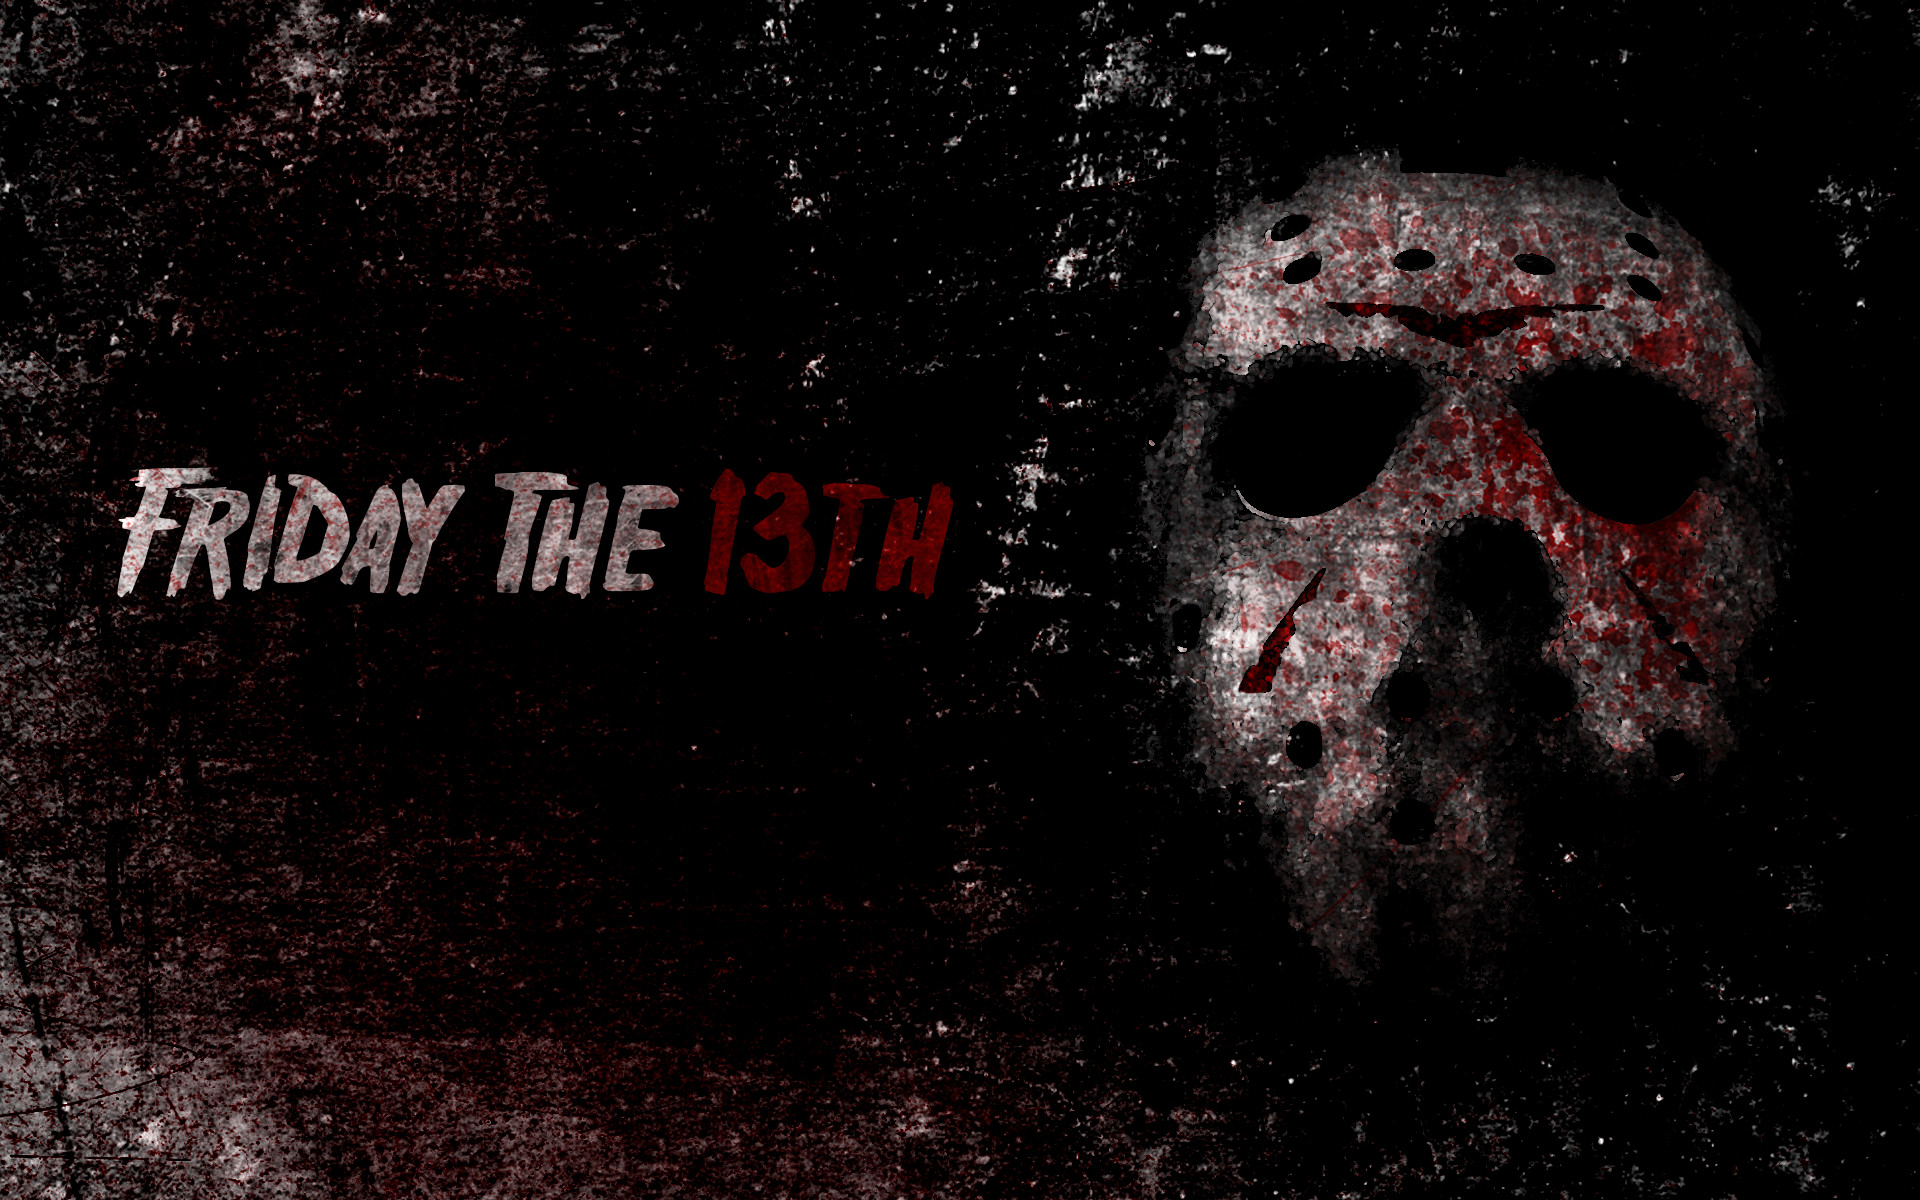 Friday The 13th Wallpapers Wallpapertag